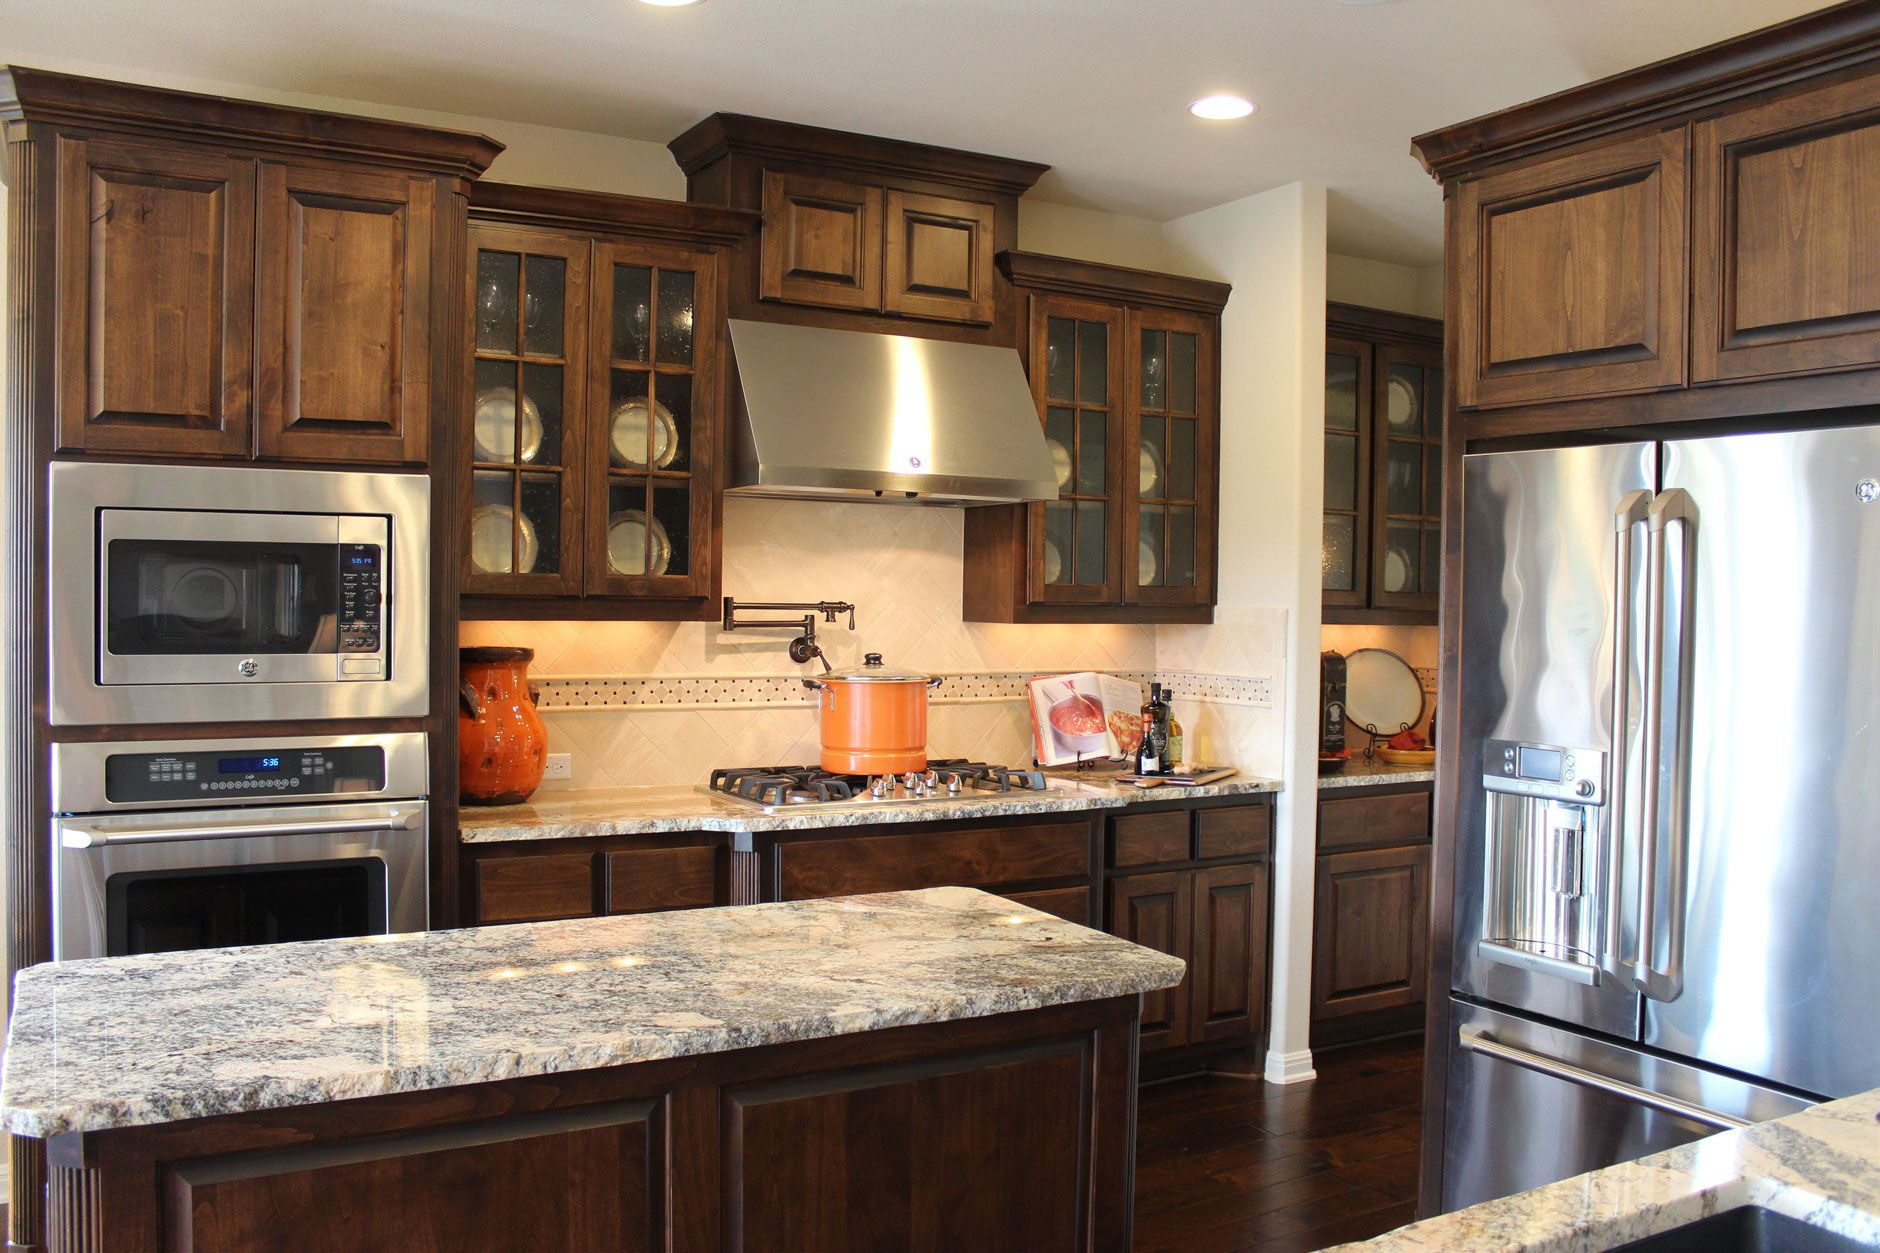 burrows cabinets kitchen in stained knotty alder and mullion doors with glass buy interior on kitchen interior cabinets id=28064